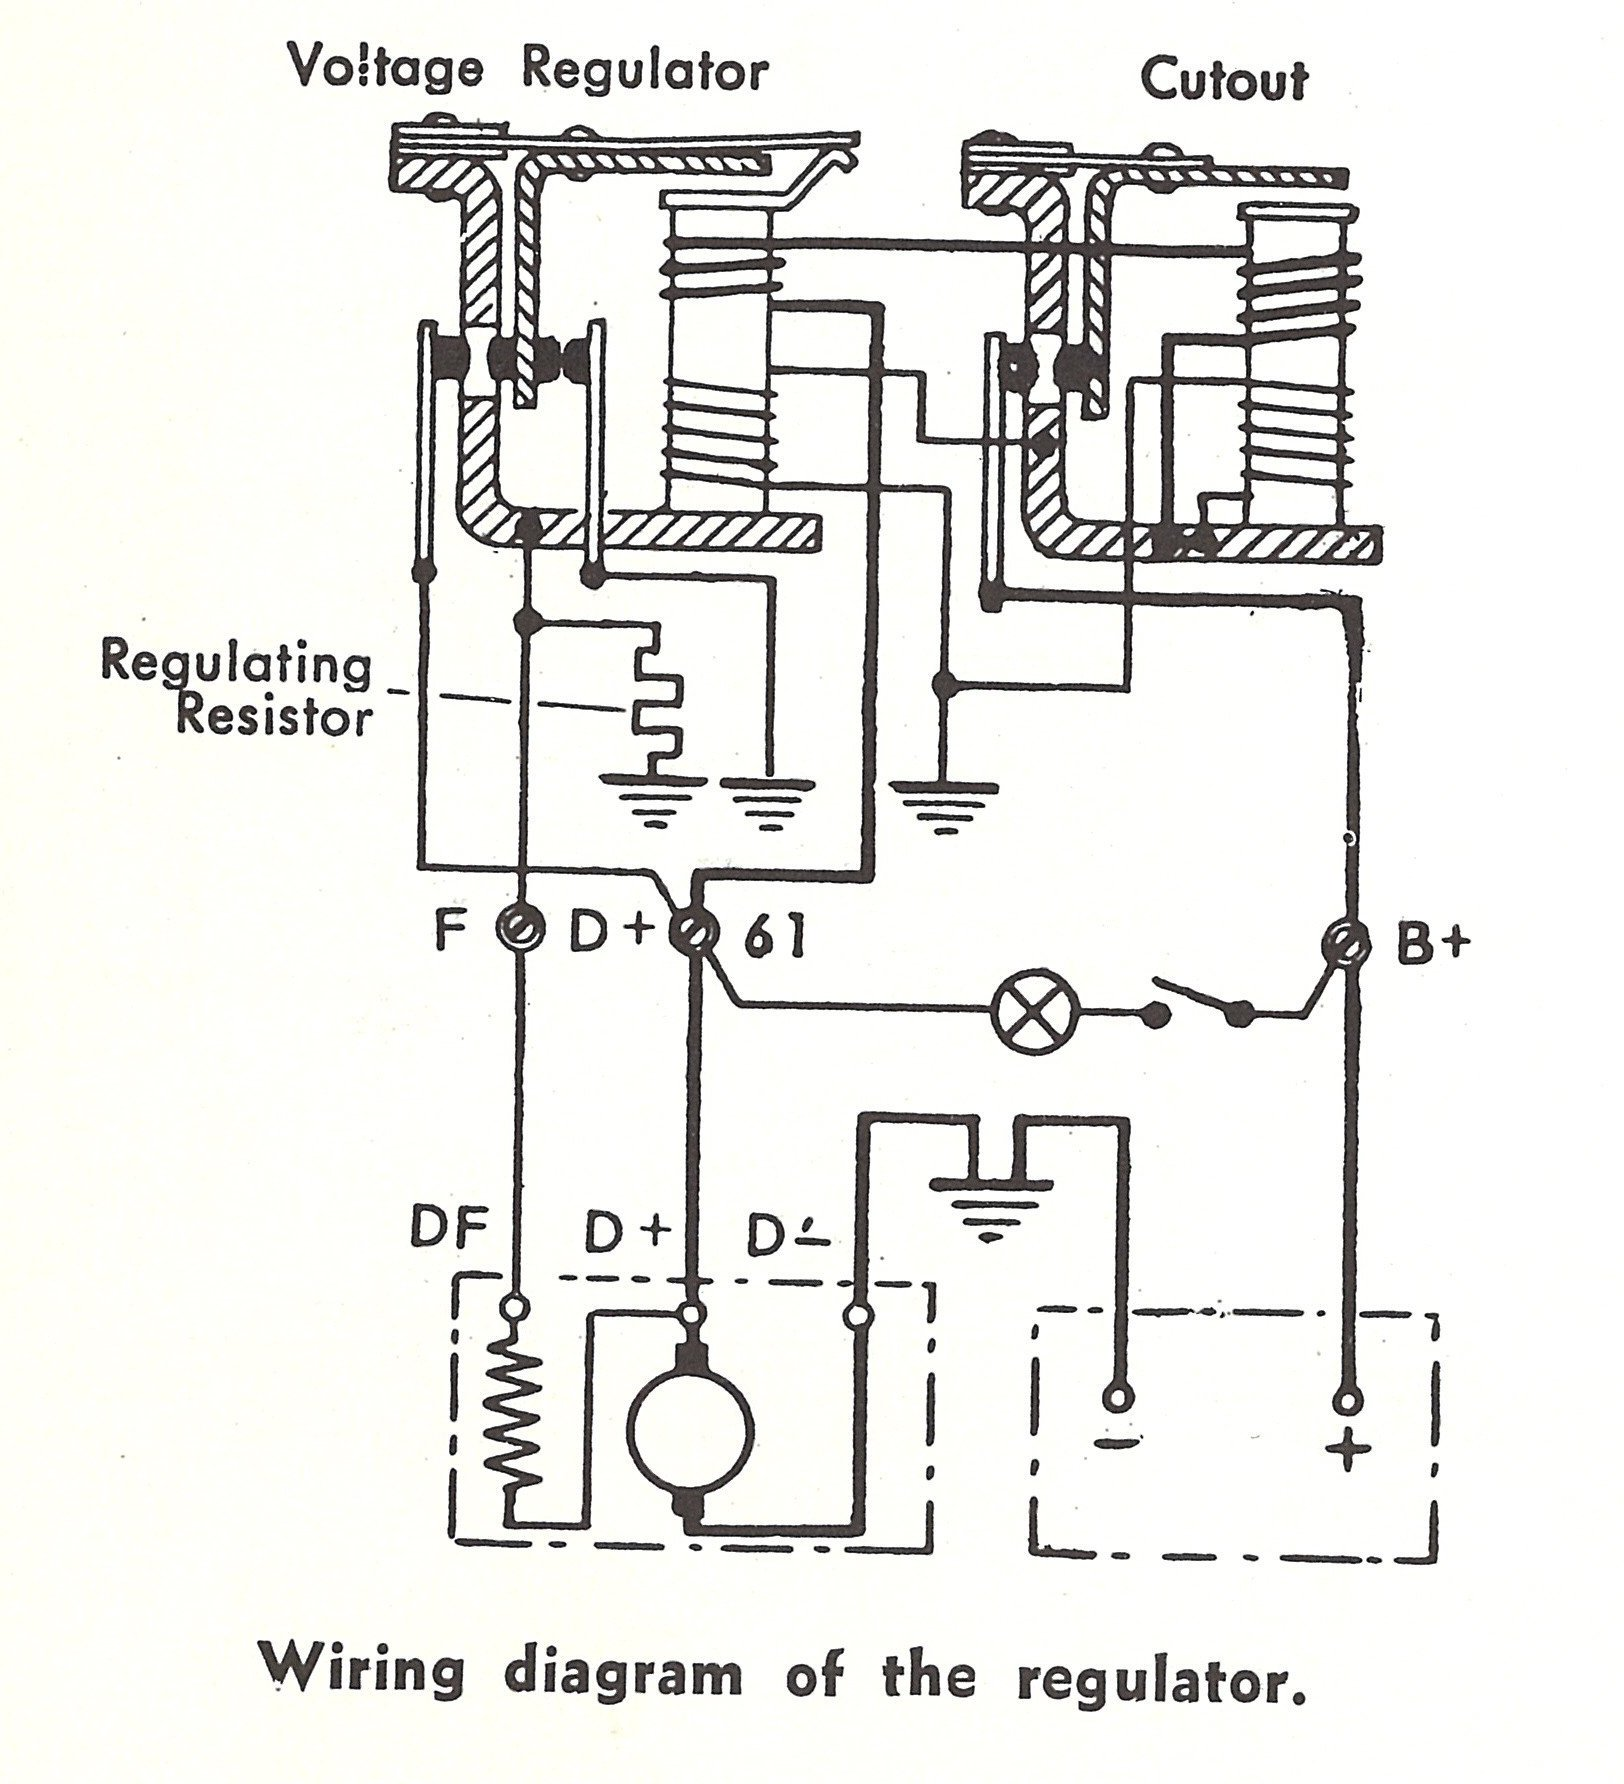 Kubota Generator Wiring Diagram On Kohler Diagrams, Kubota